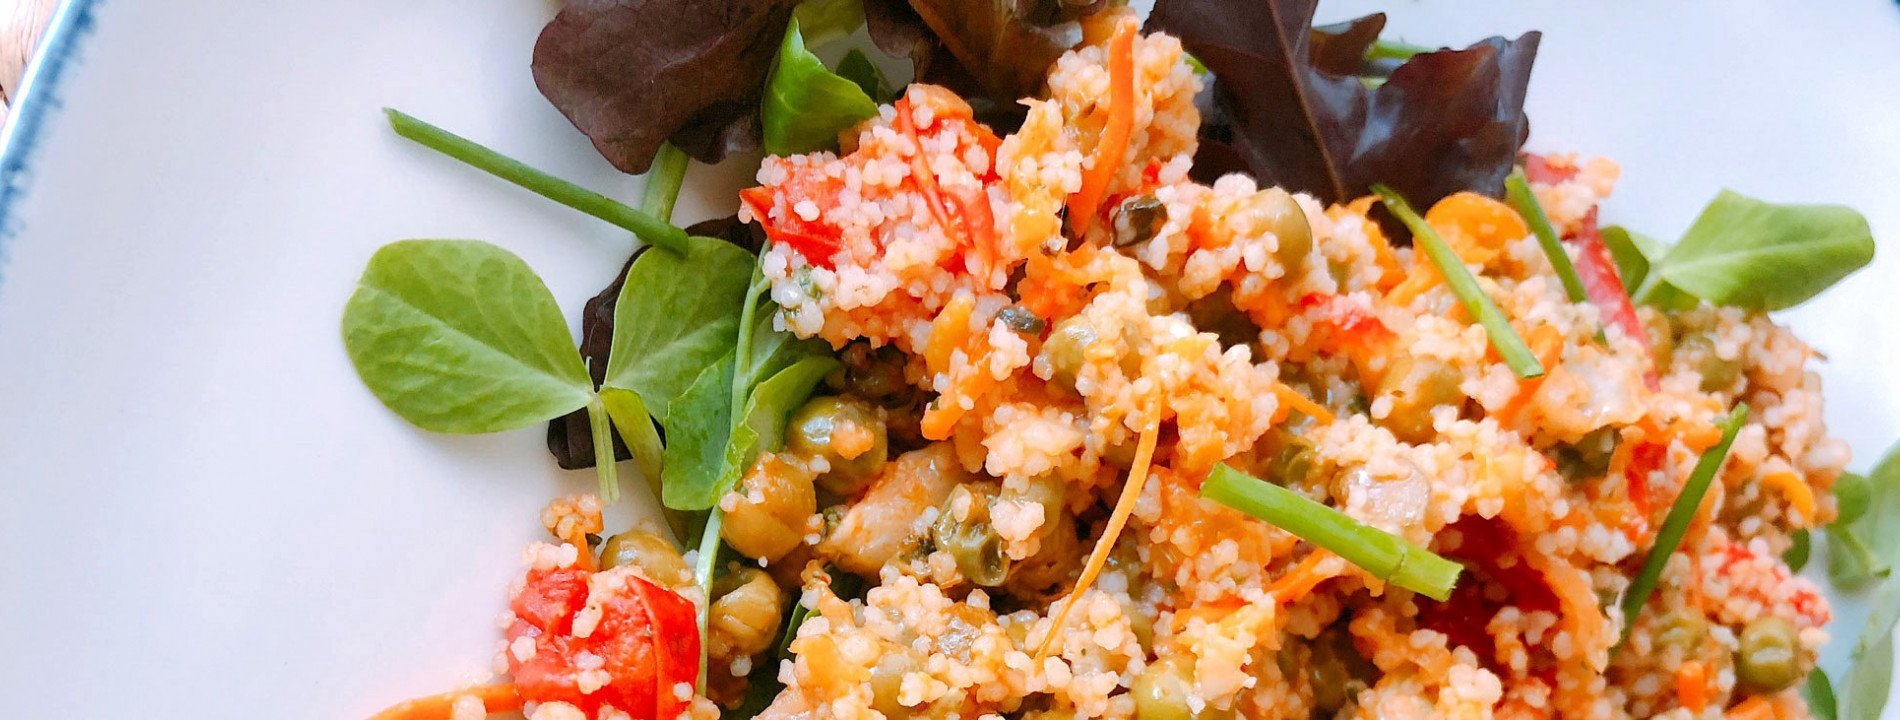 Quinoa Salad with Peas